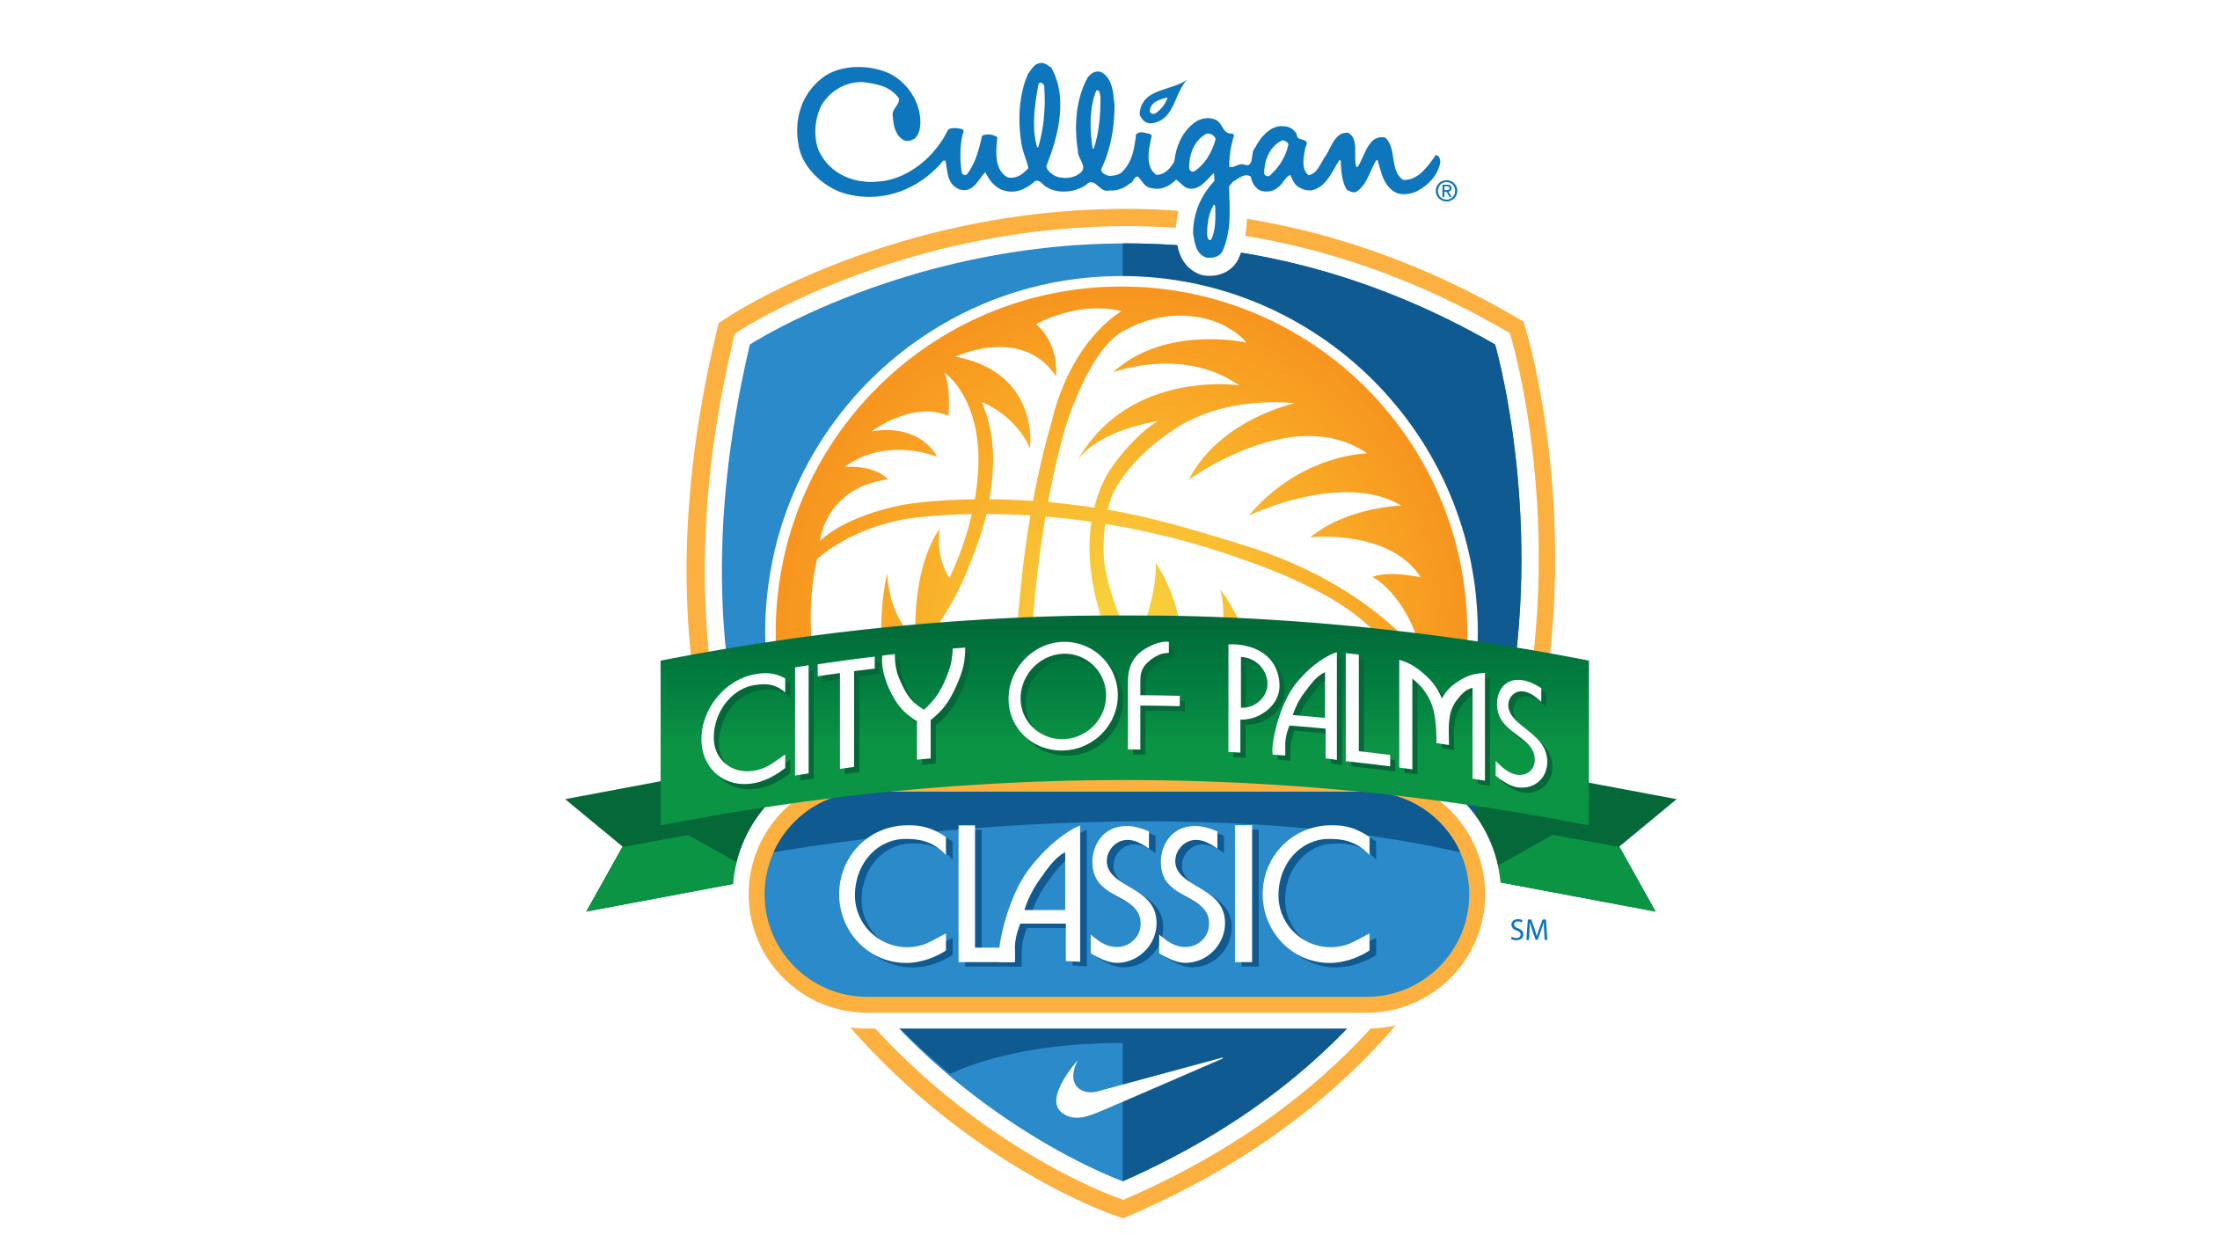 Culligan City of Palms Classic welcomes Millennium Physician Group as a Presenting Sponsor